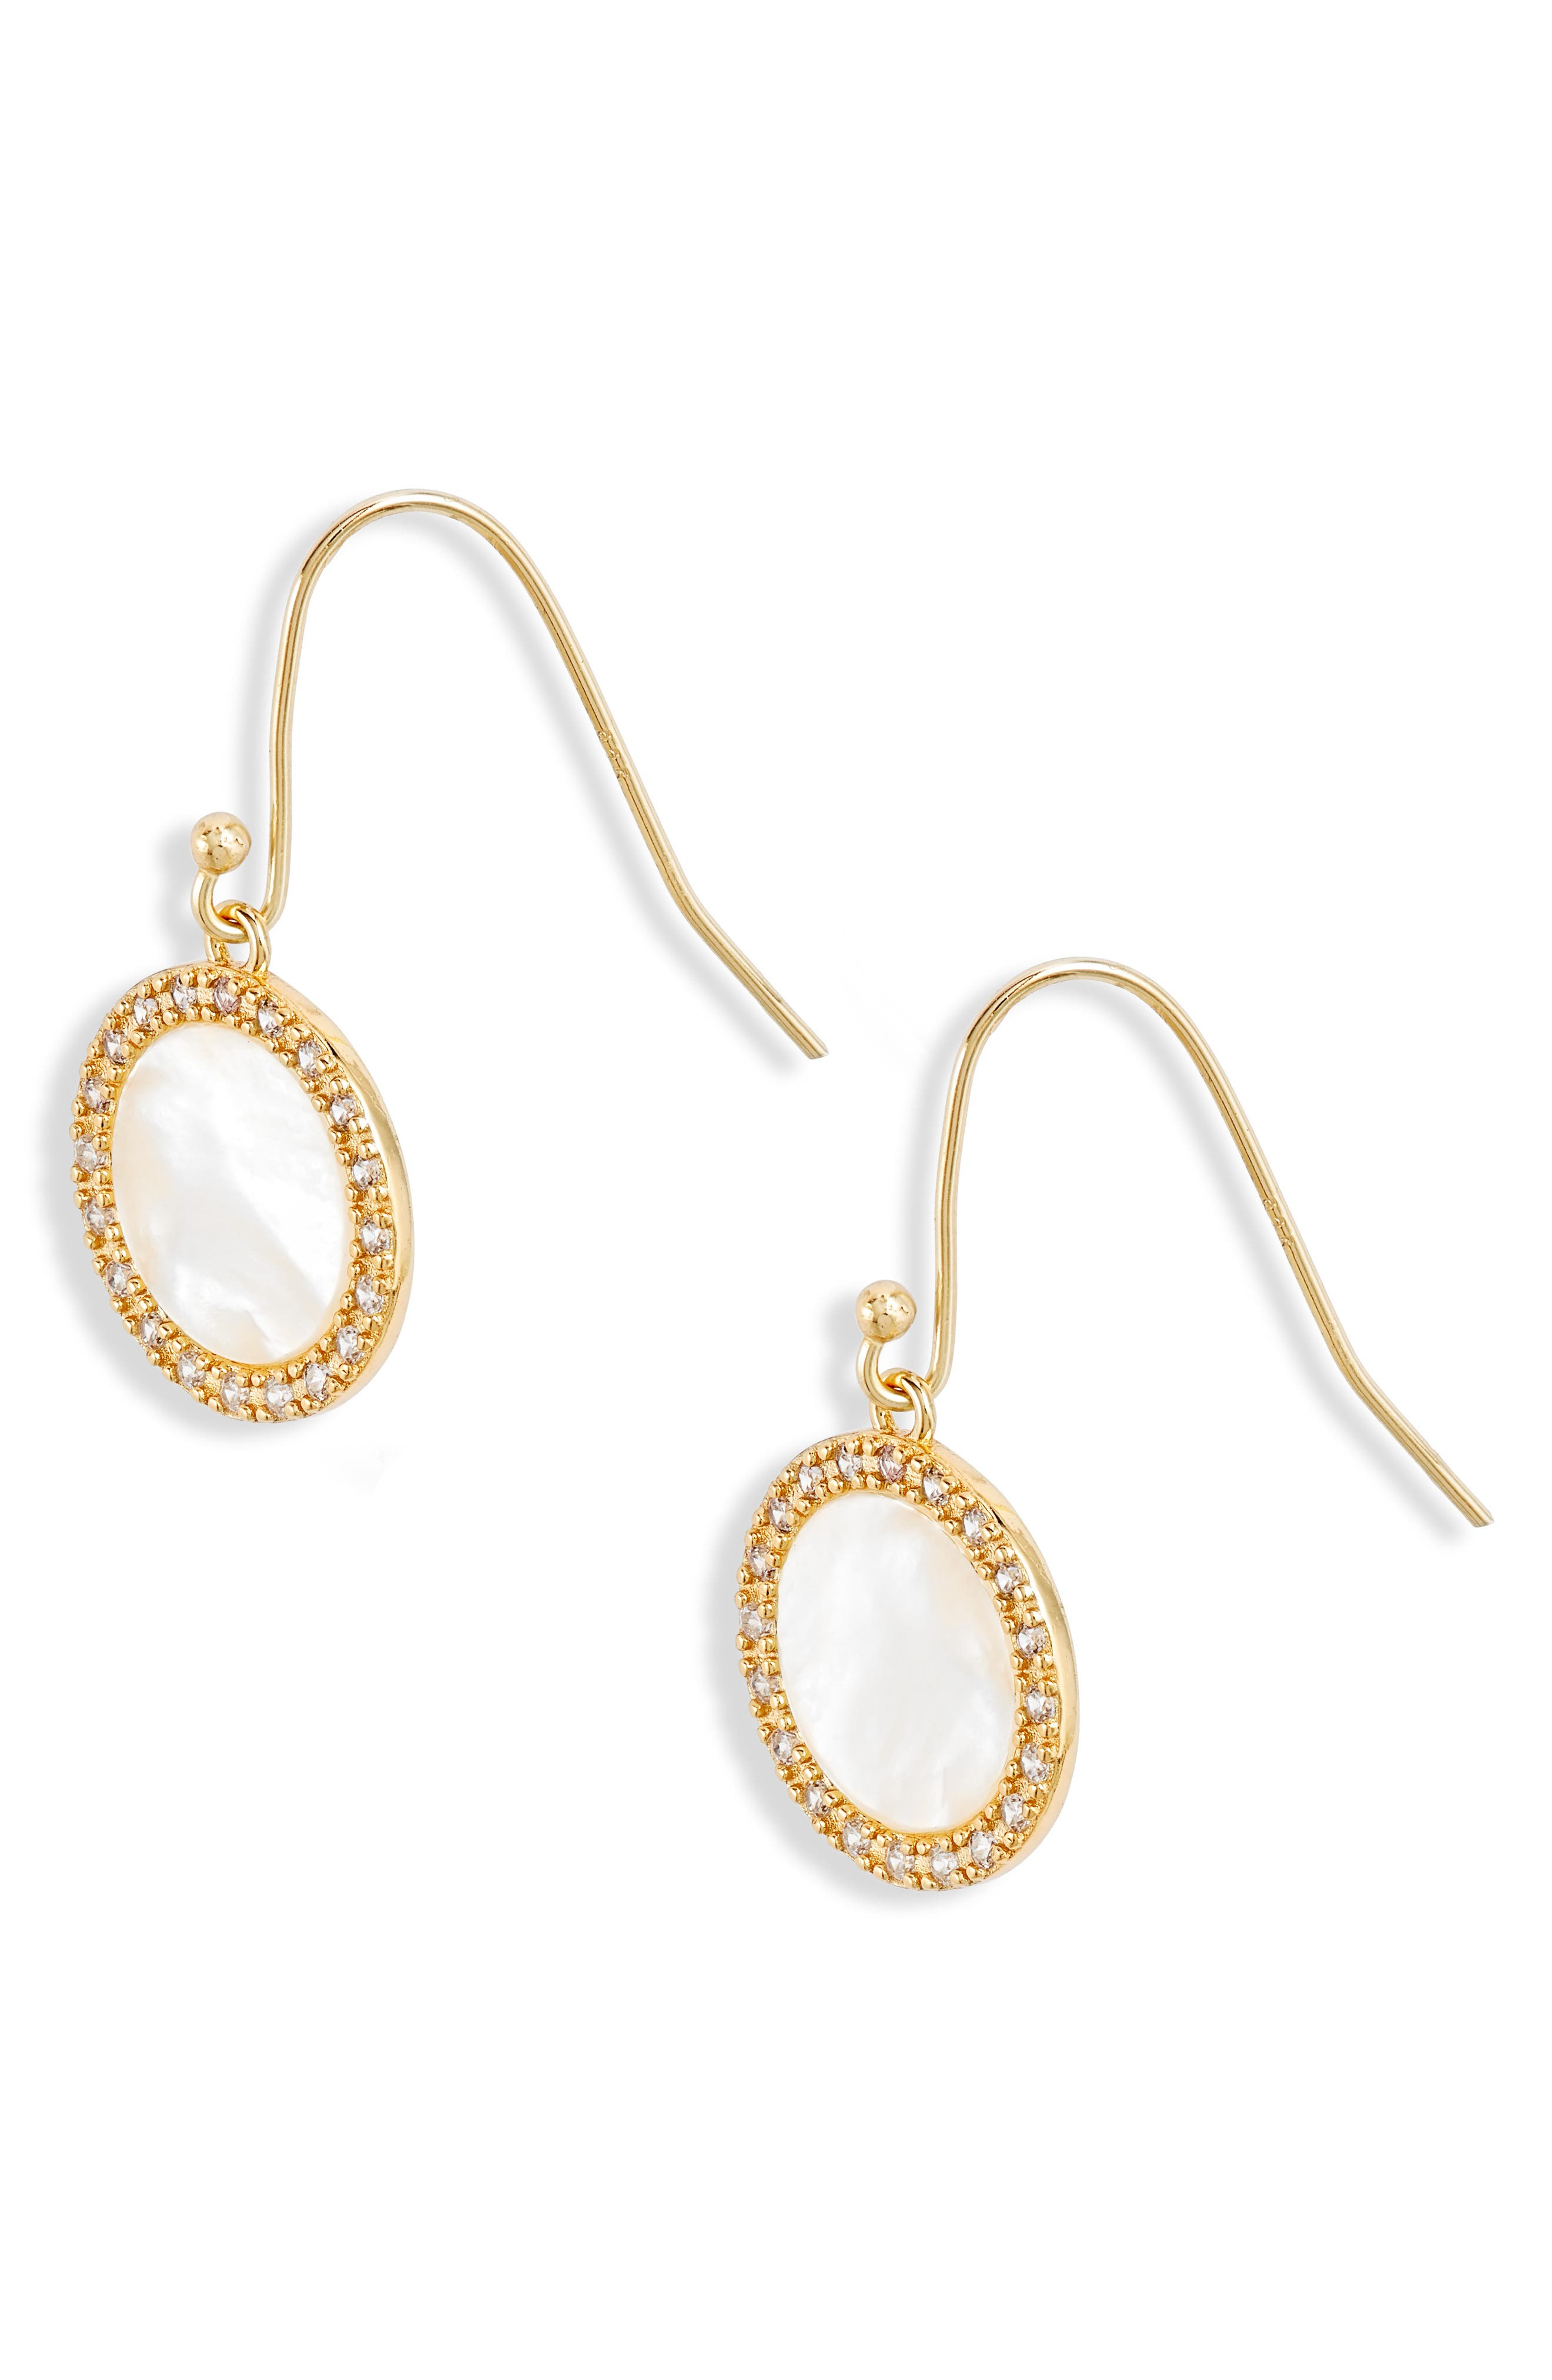 Mother of Pearl Drop Earrings,                             Main thumbnail 1, color,                             MOTHER OF PEARL/ GOLD